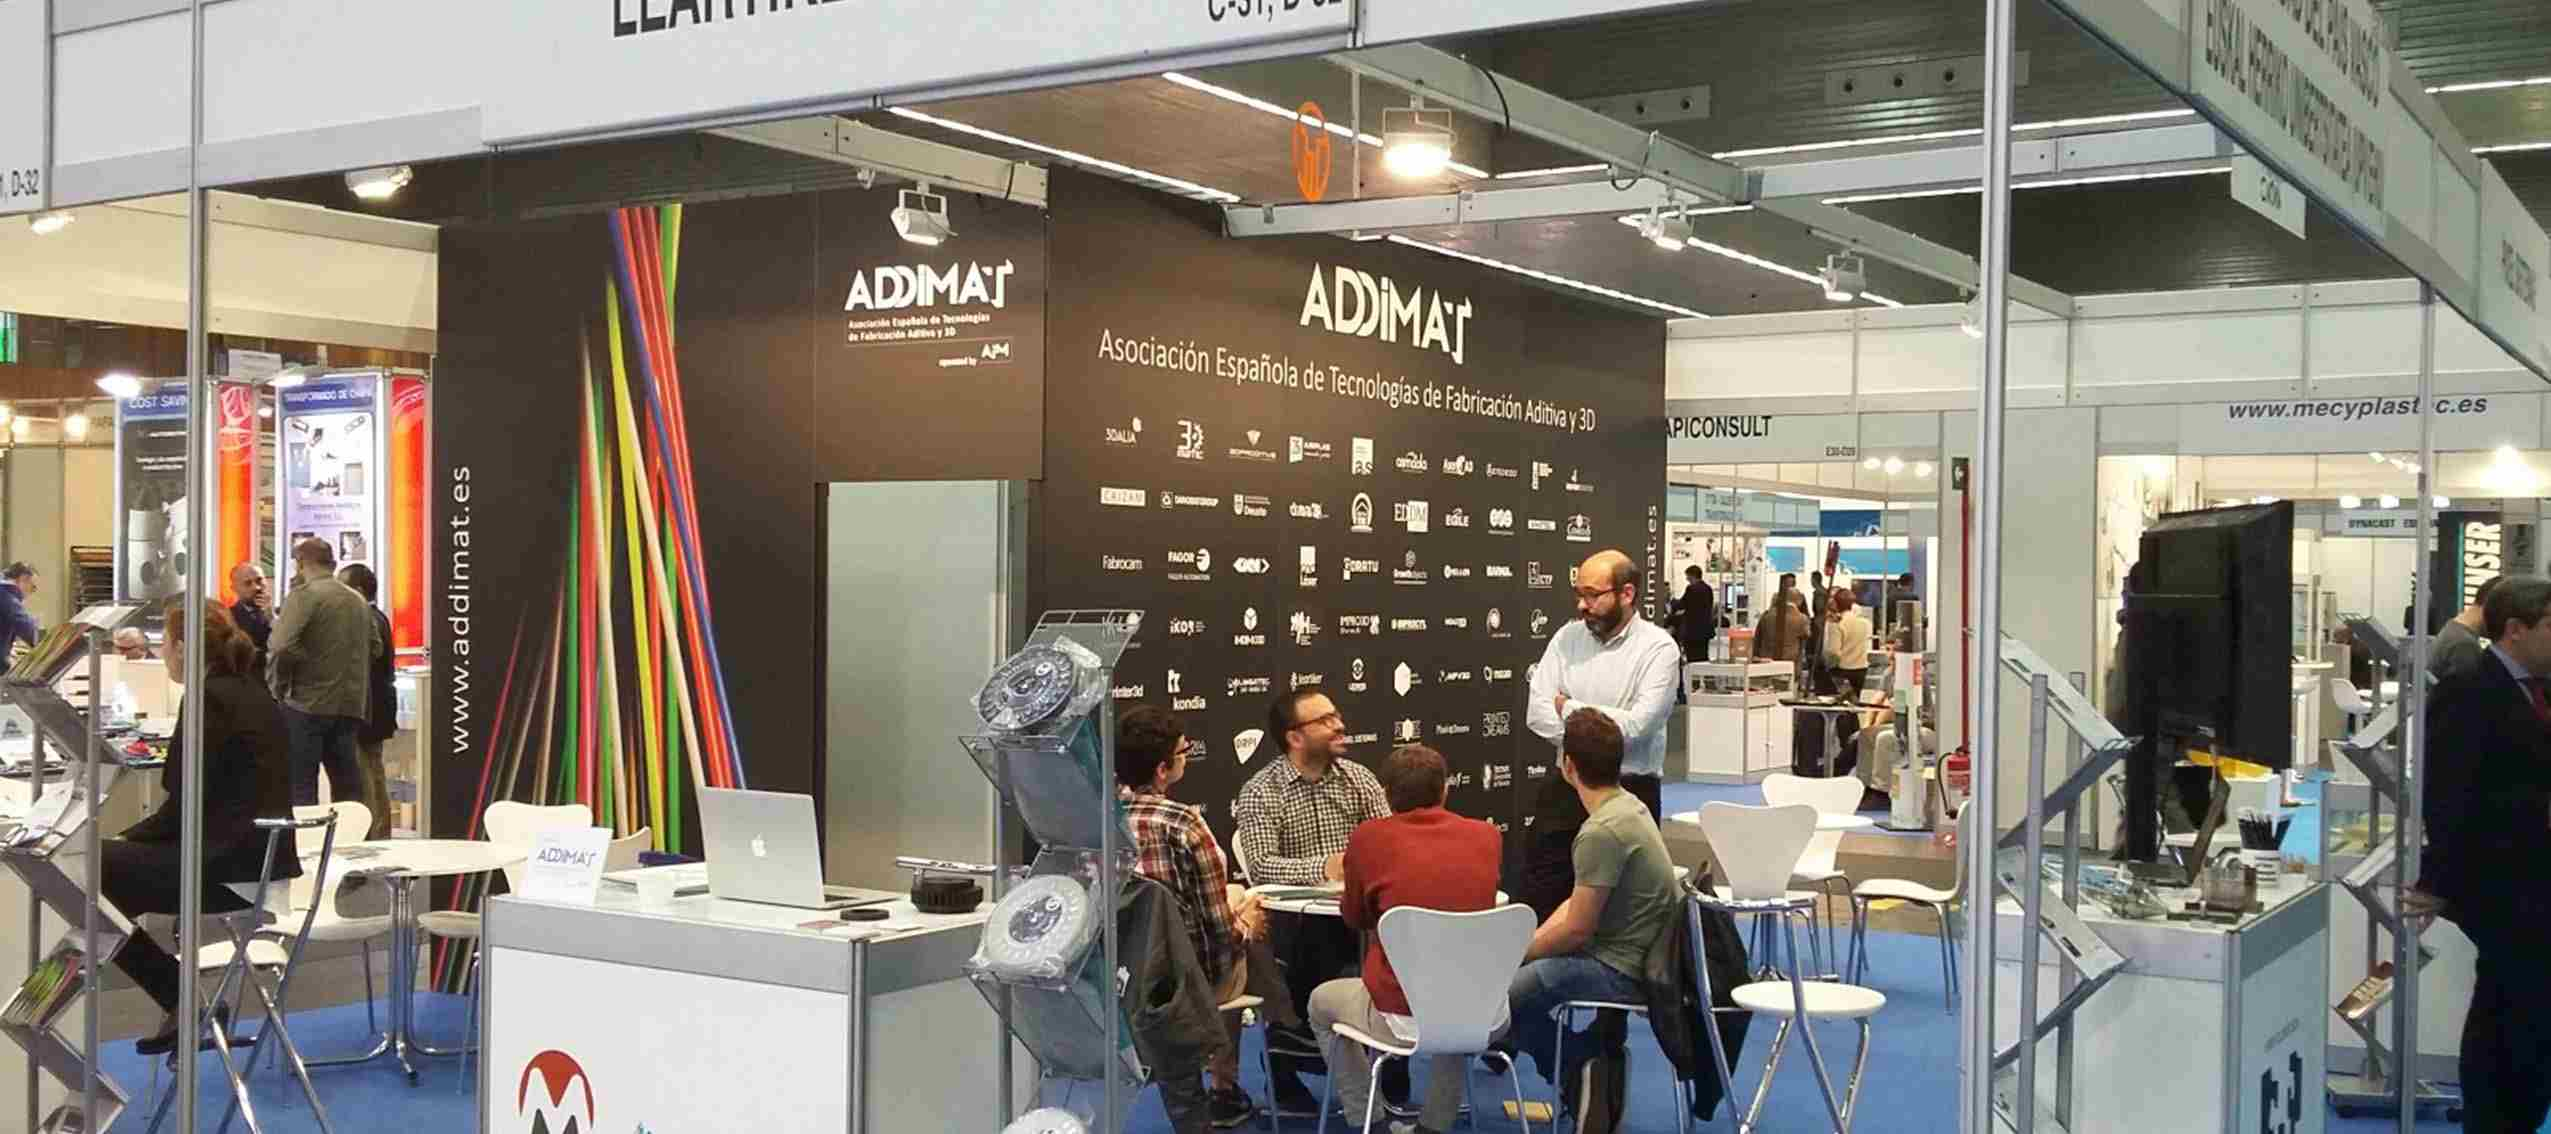 ADDIT3D returns with new solutions